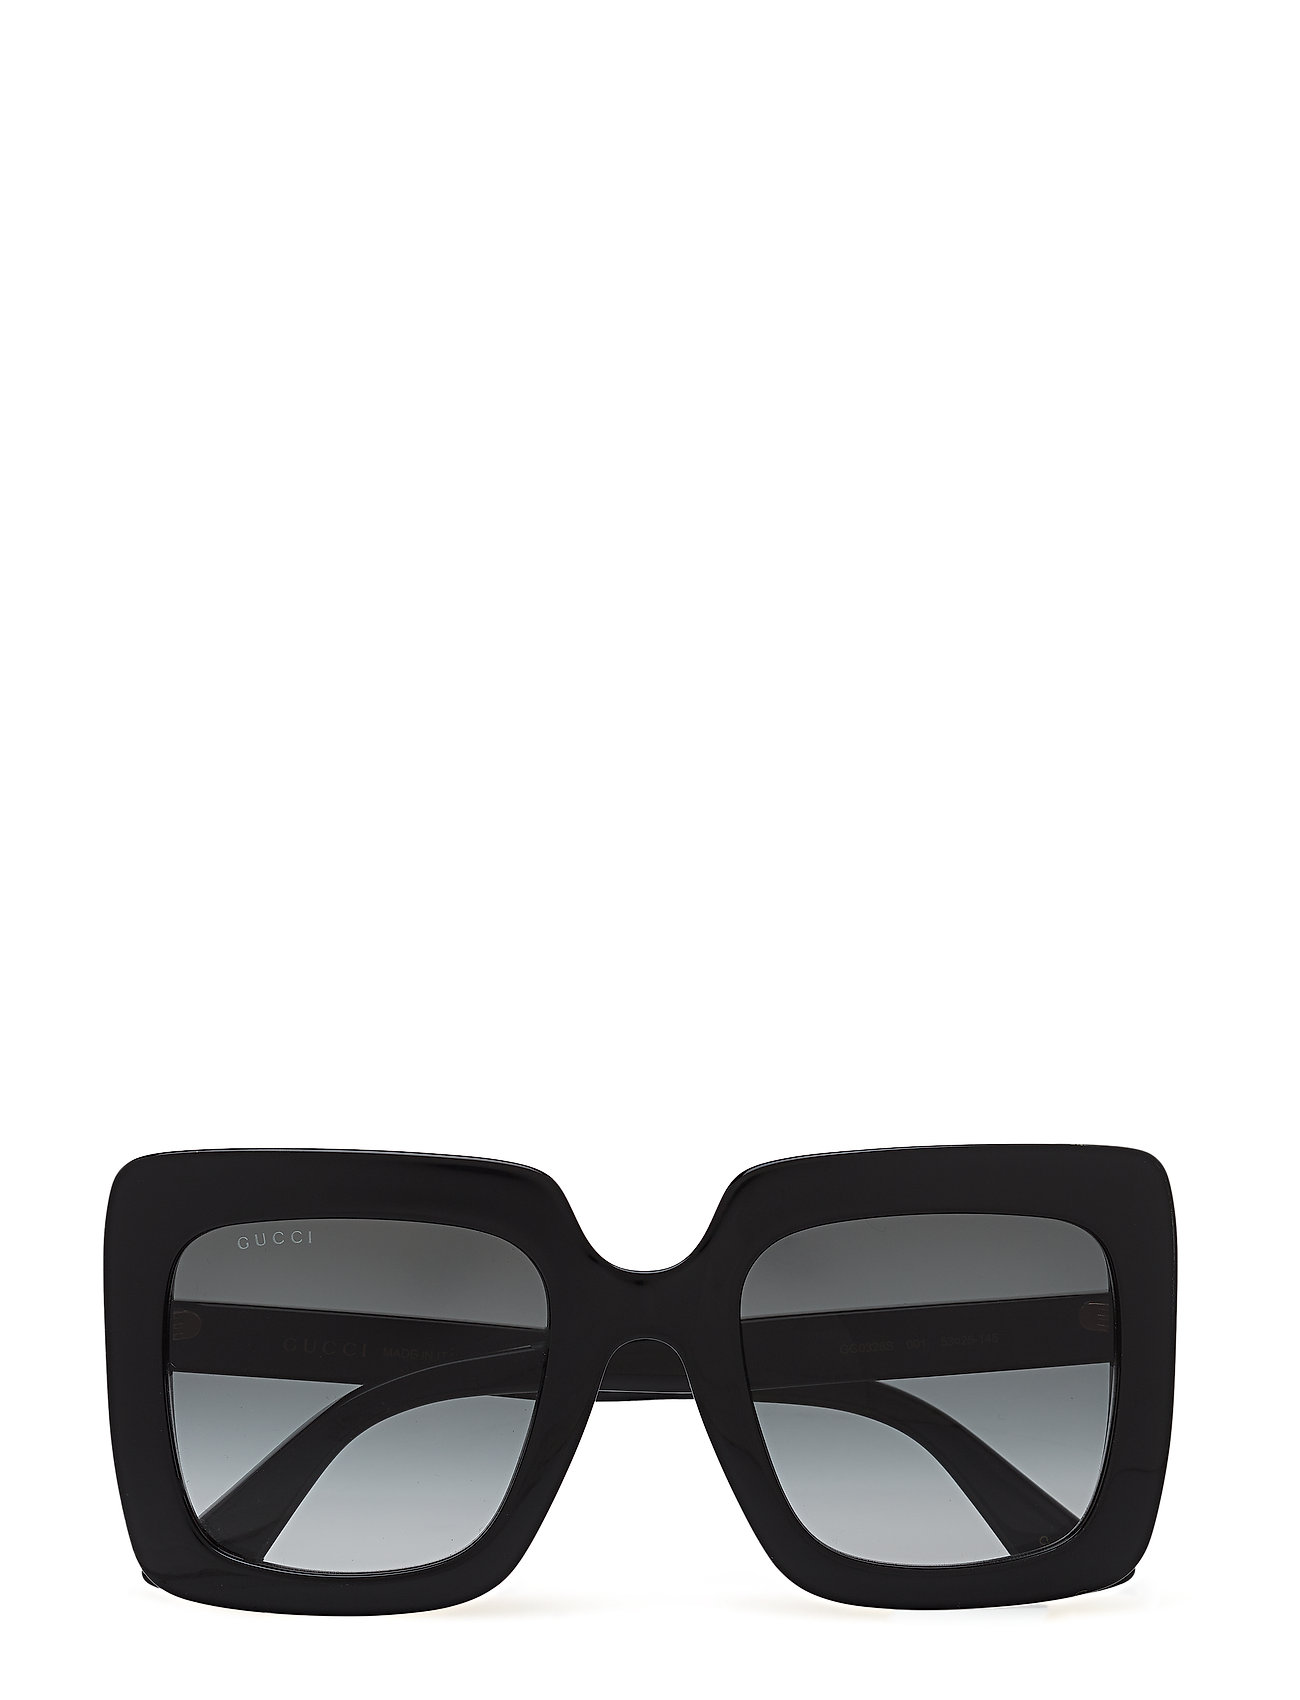 Gucci Sunglasses GG0328S - BLACK-BLACK-GREY